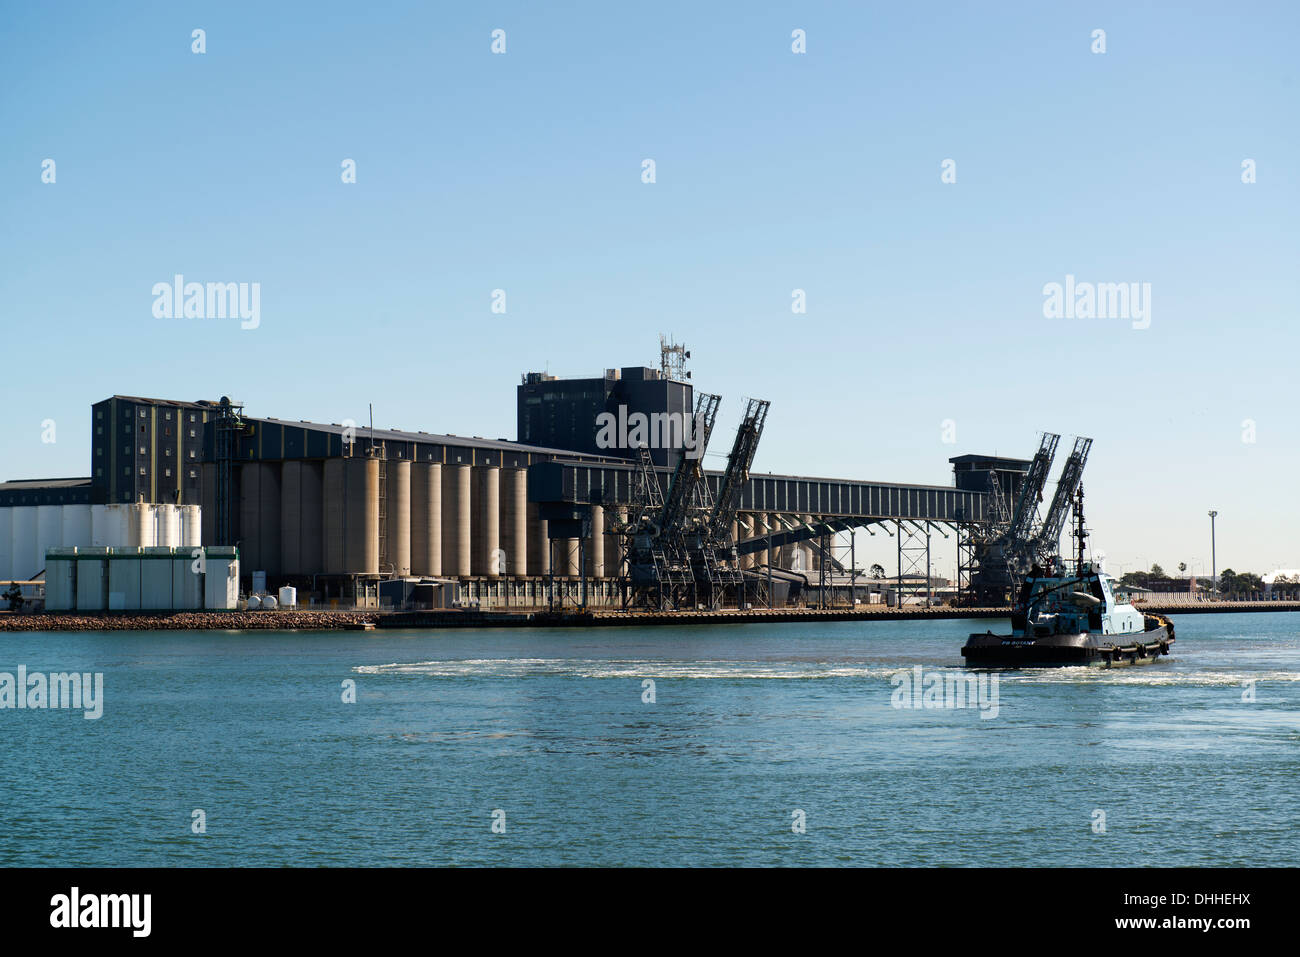 Tugboat and ship loading facilities on the Hunter River in Newcastle. - Stock Image